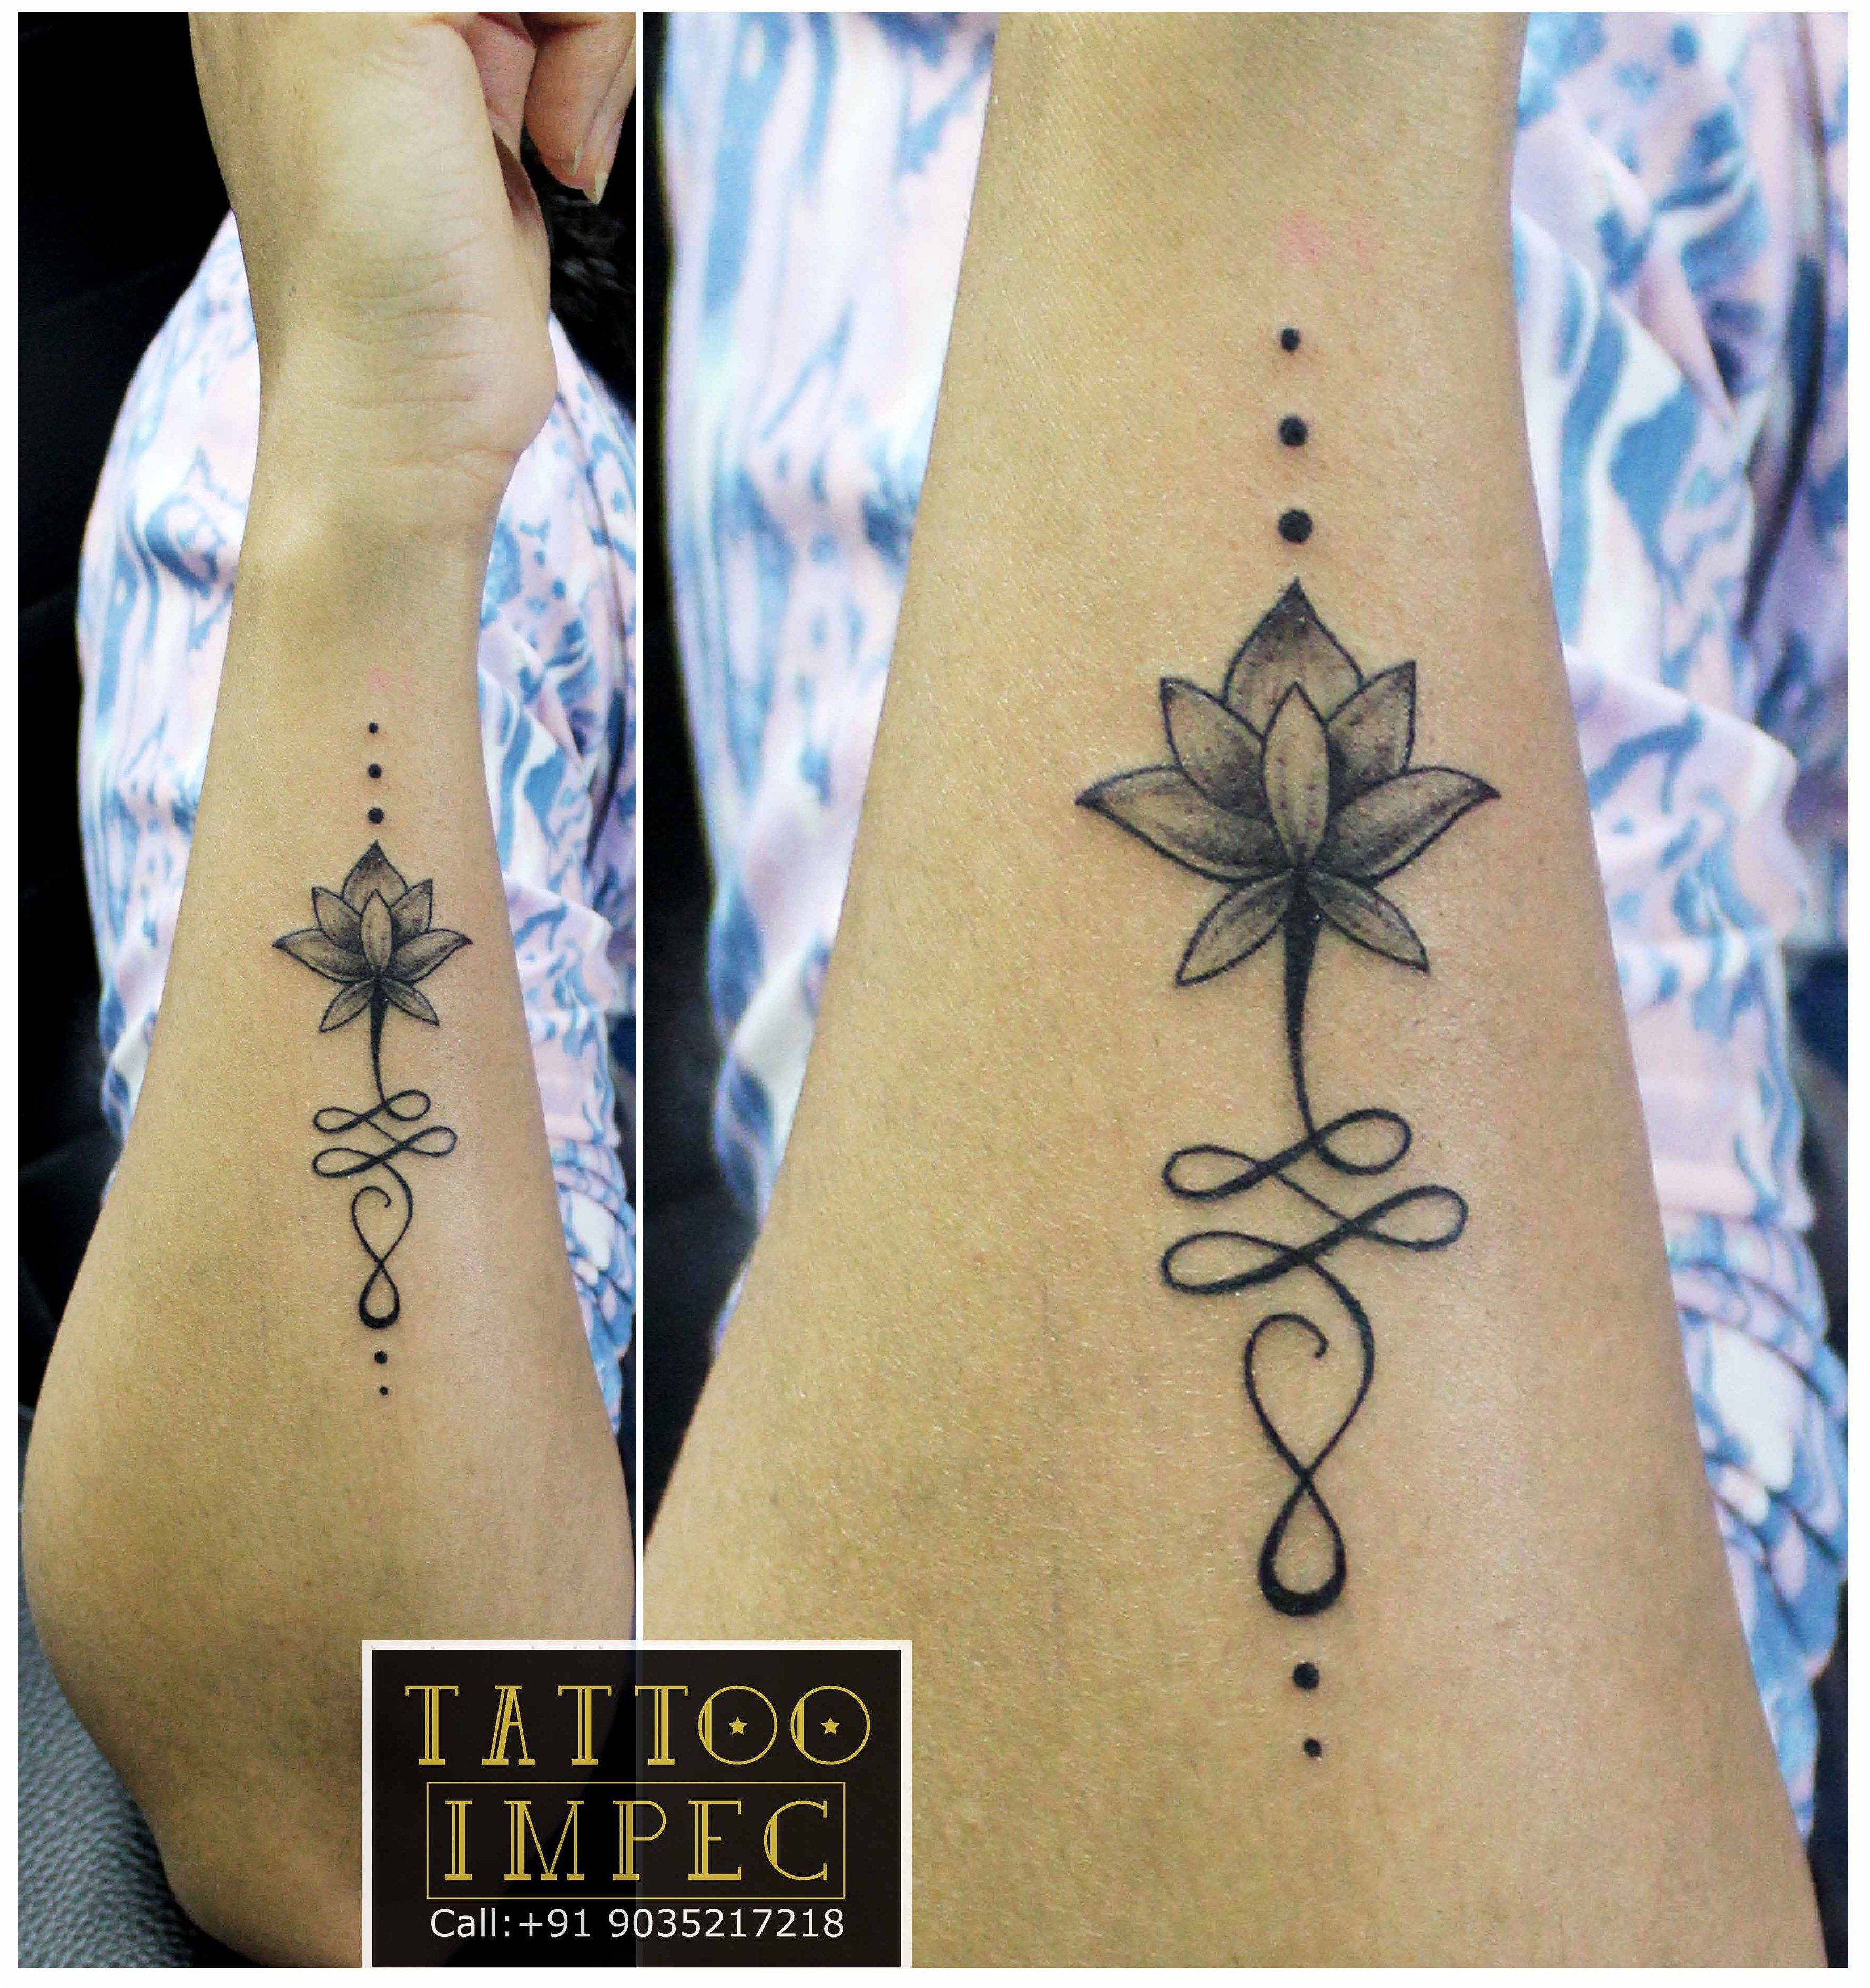 Lotus Unalome Tattoo Perhaps Back Of Calf Back Of Arm Or Down Middle Of Back Tattoosymbols Click For More Unalome Tattoo Tattoos Wrist Tattoos For Guys